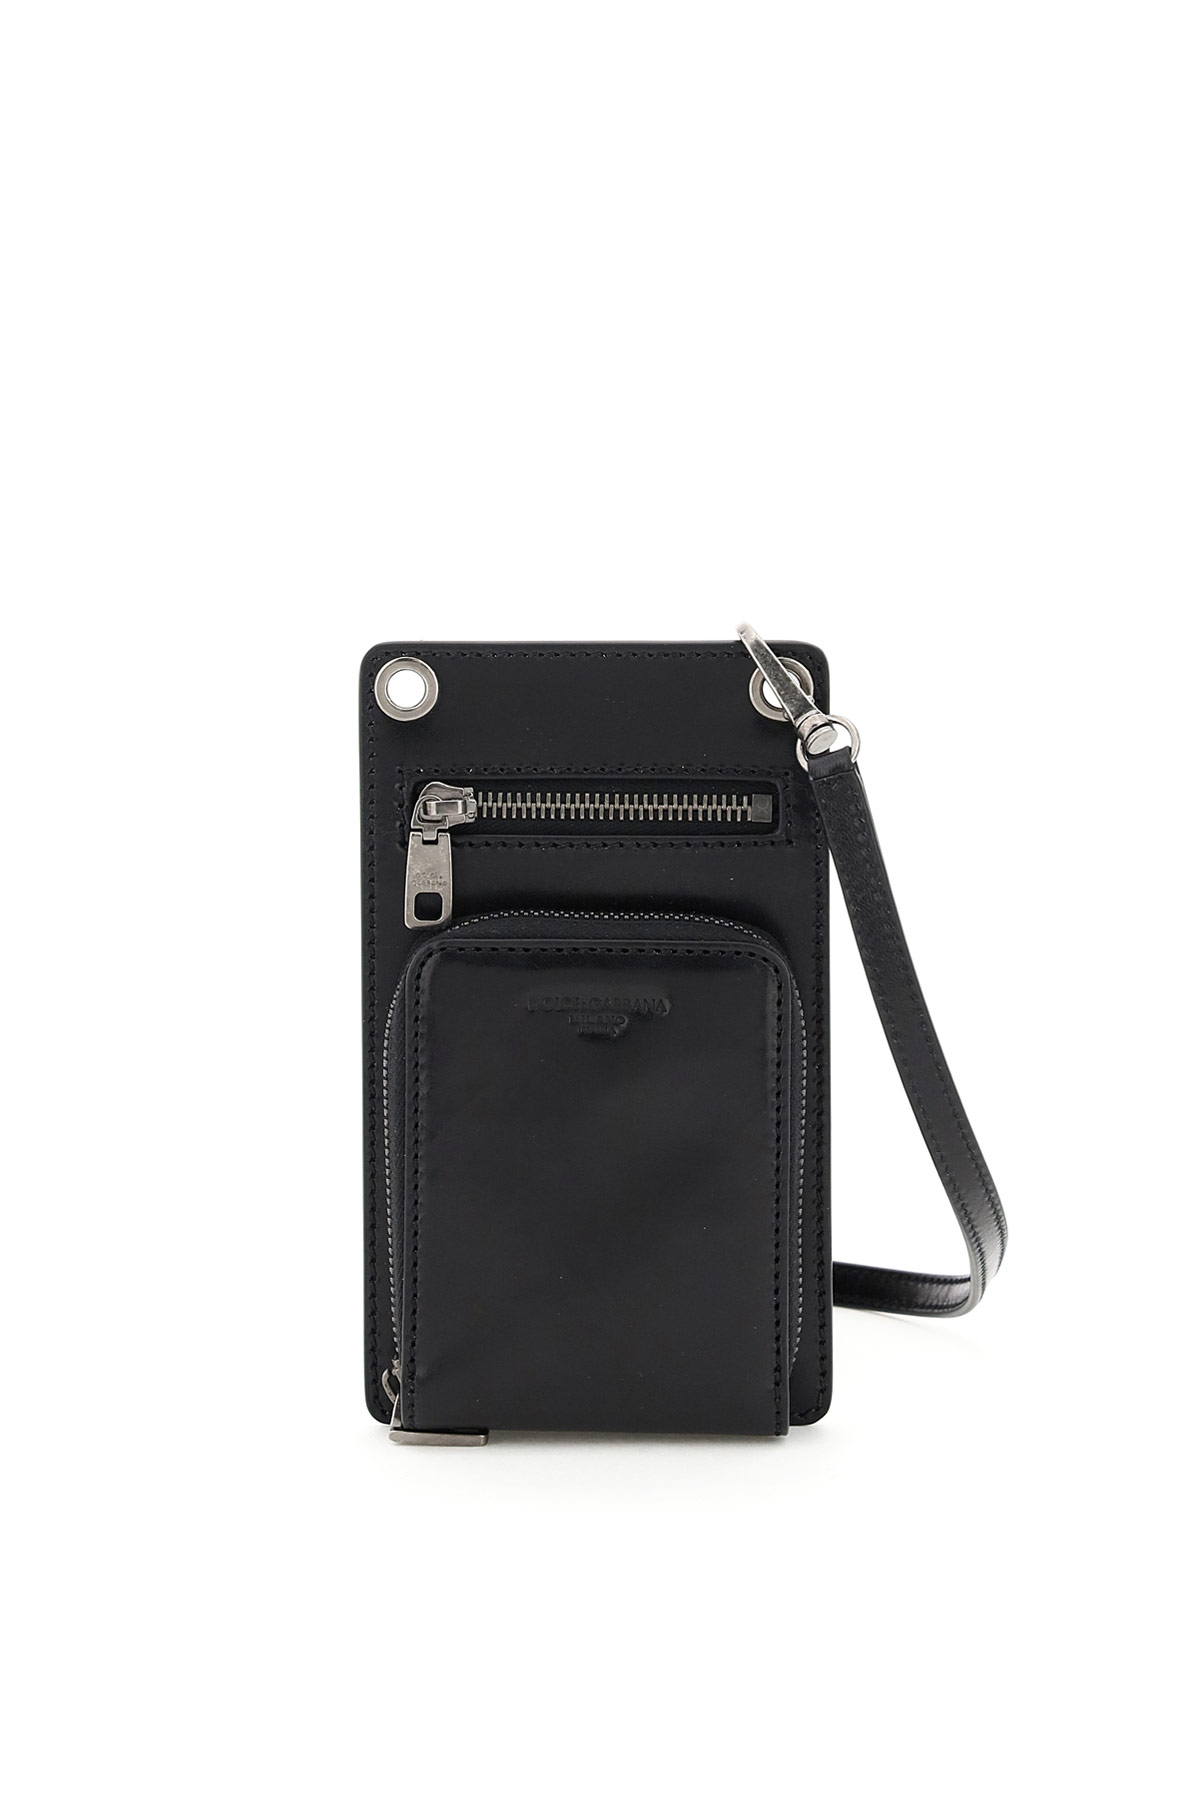 DOLCE & GABBANA PHONE POUCH WITH WALLET AND SHOULDER STRAP OS Black Leather